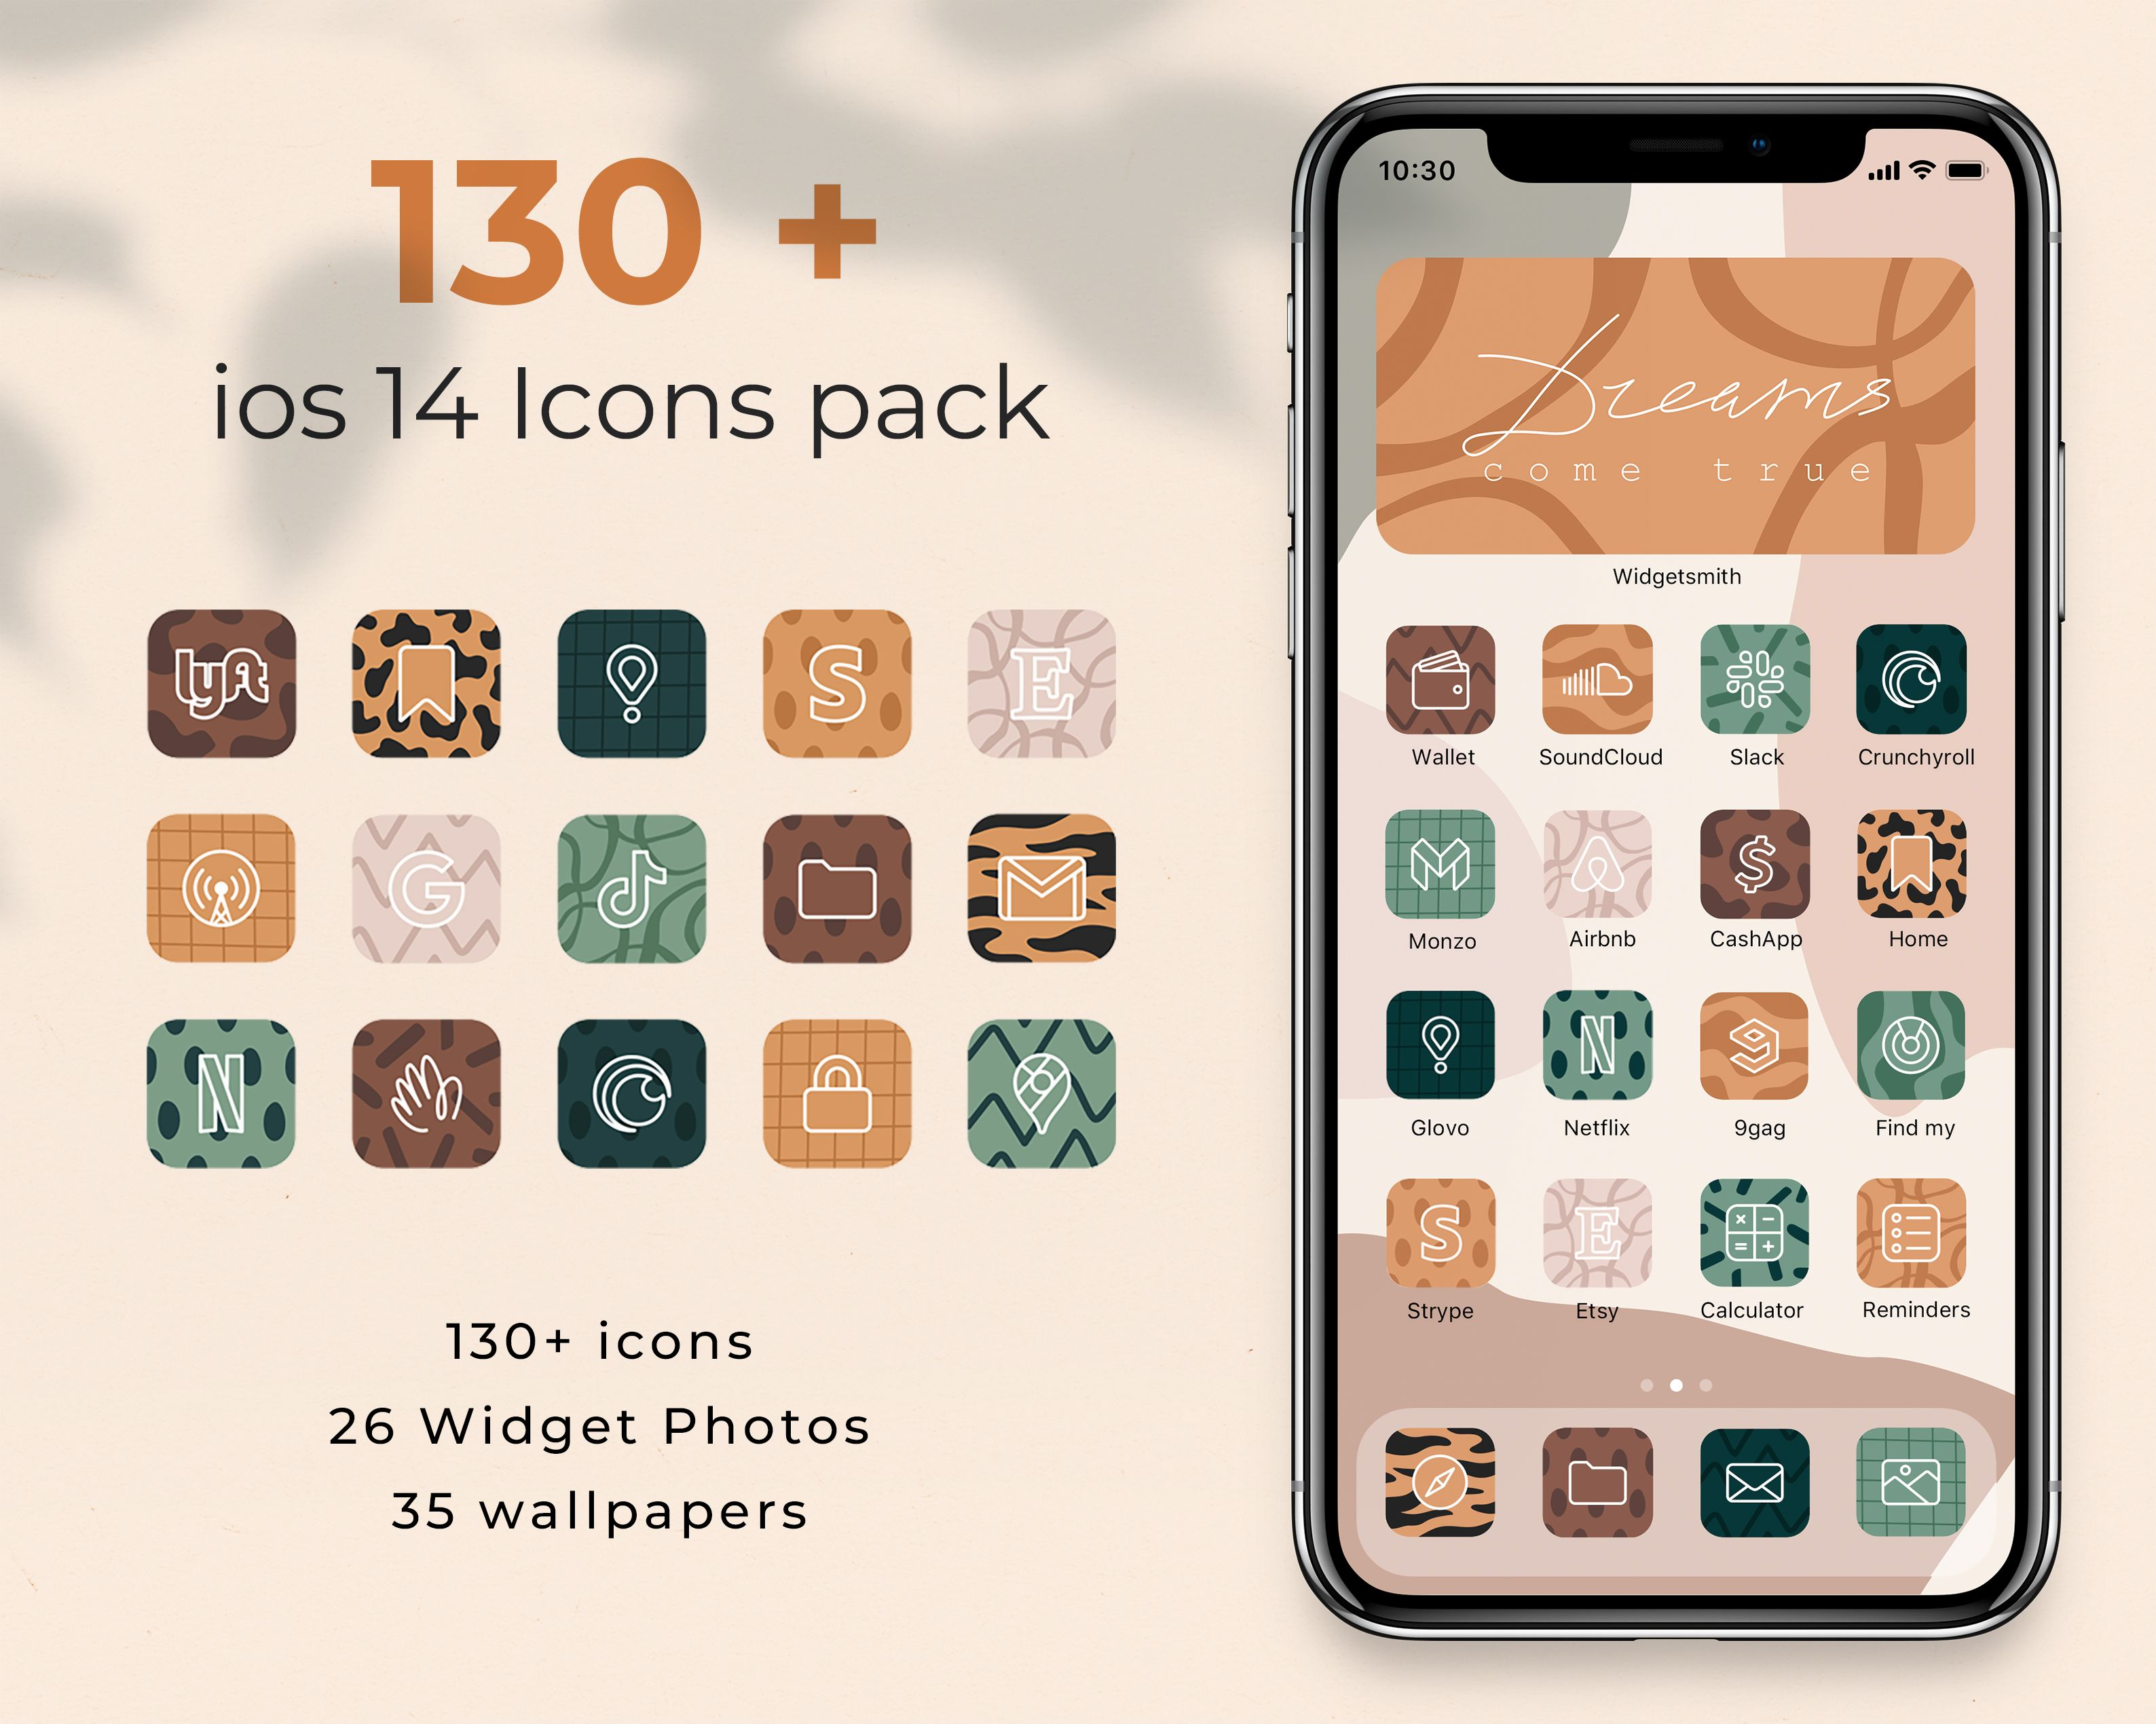 Ios 14 Safari Icons Cover 135 Digital App Icons Template Pack For Iphone And Ipad Big Animal Print Homescreen Icons Leopard Tiger In 2021 Homescreen App Covers App Icon